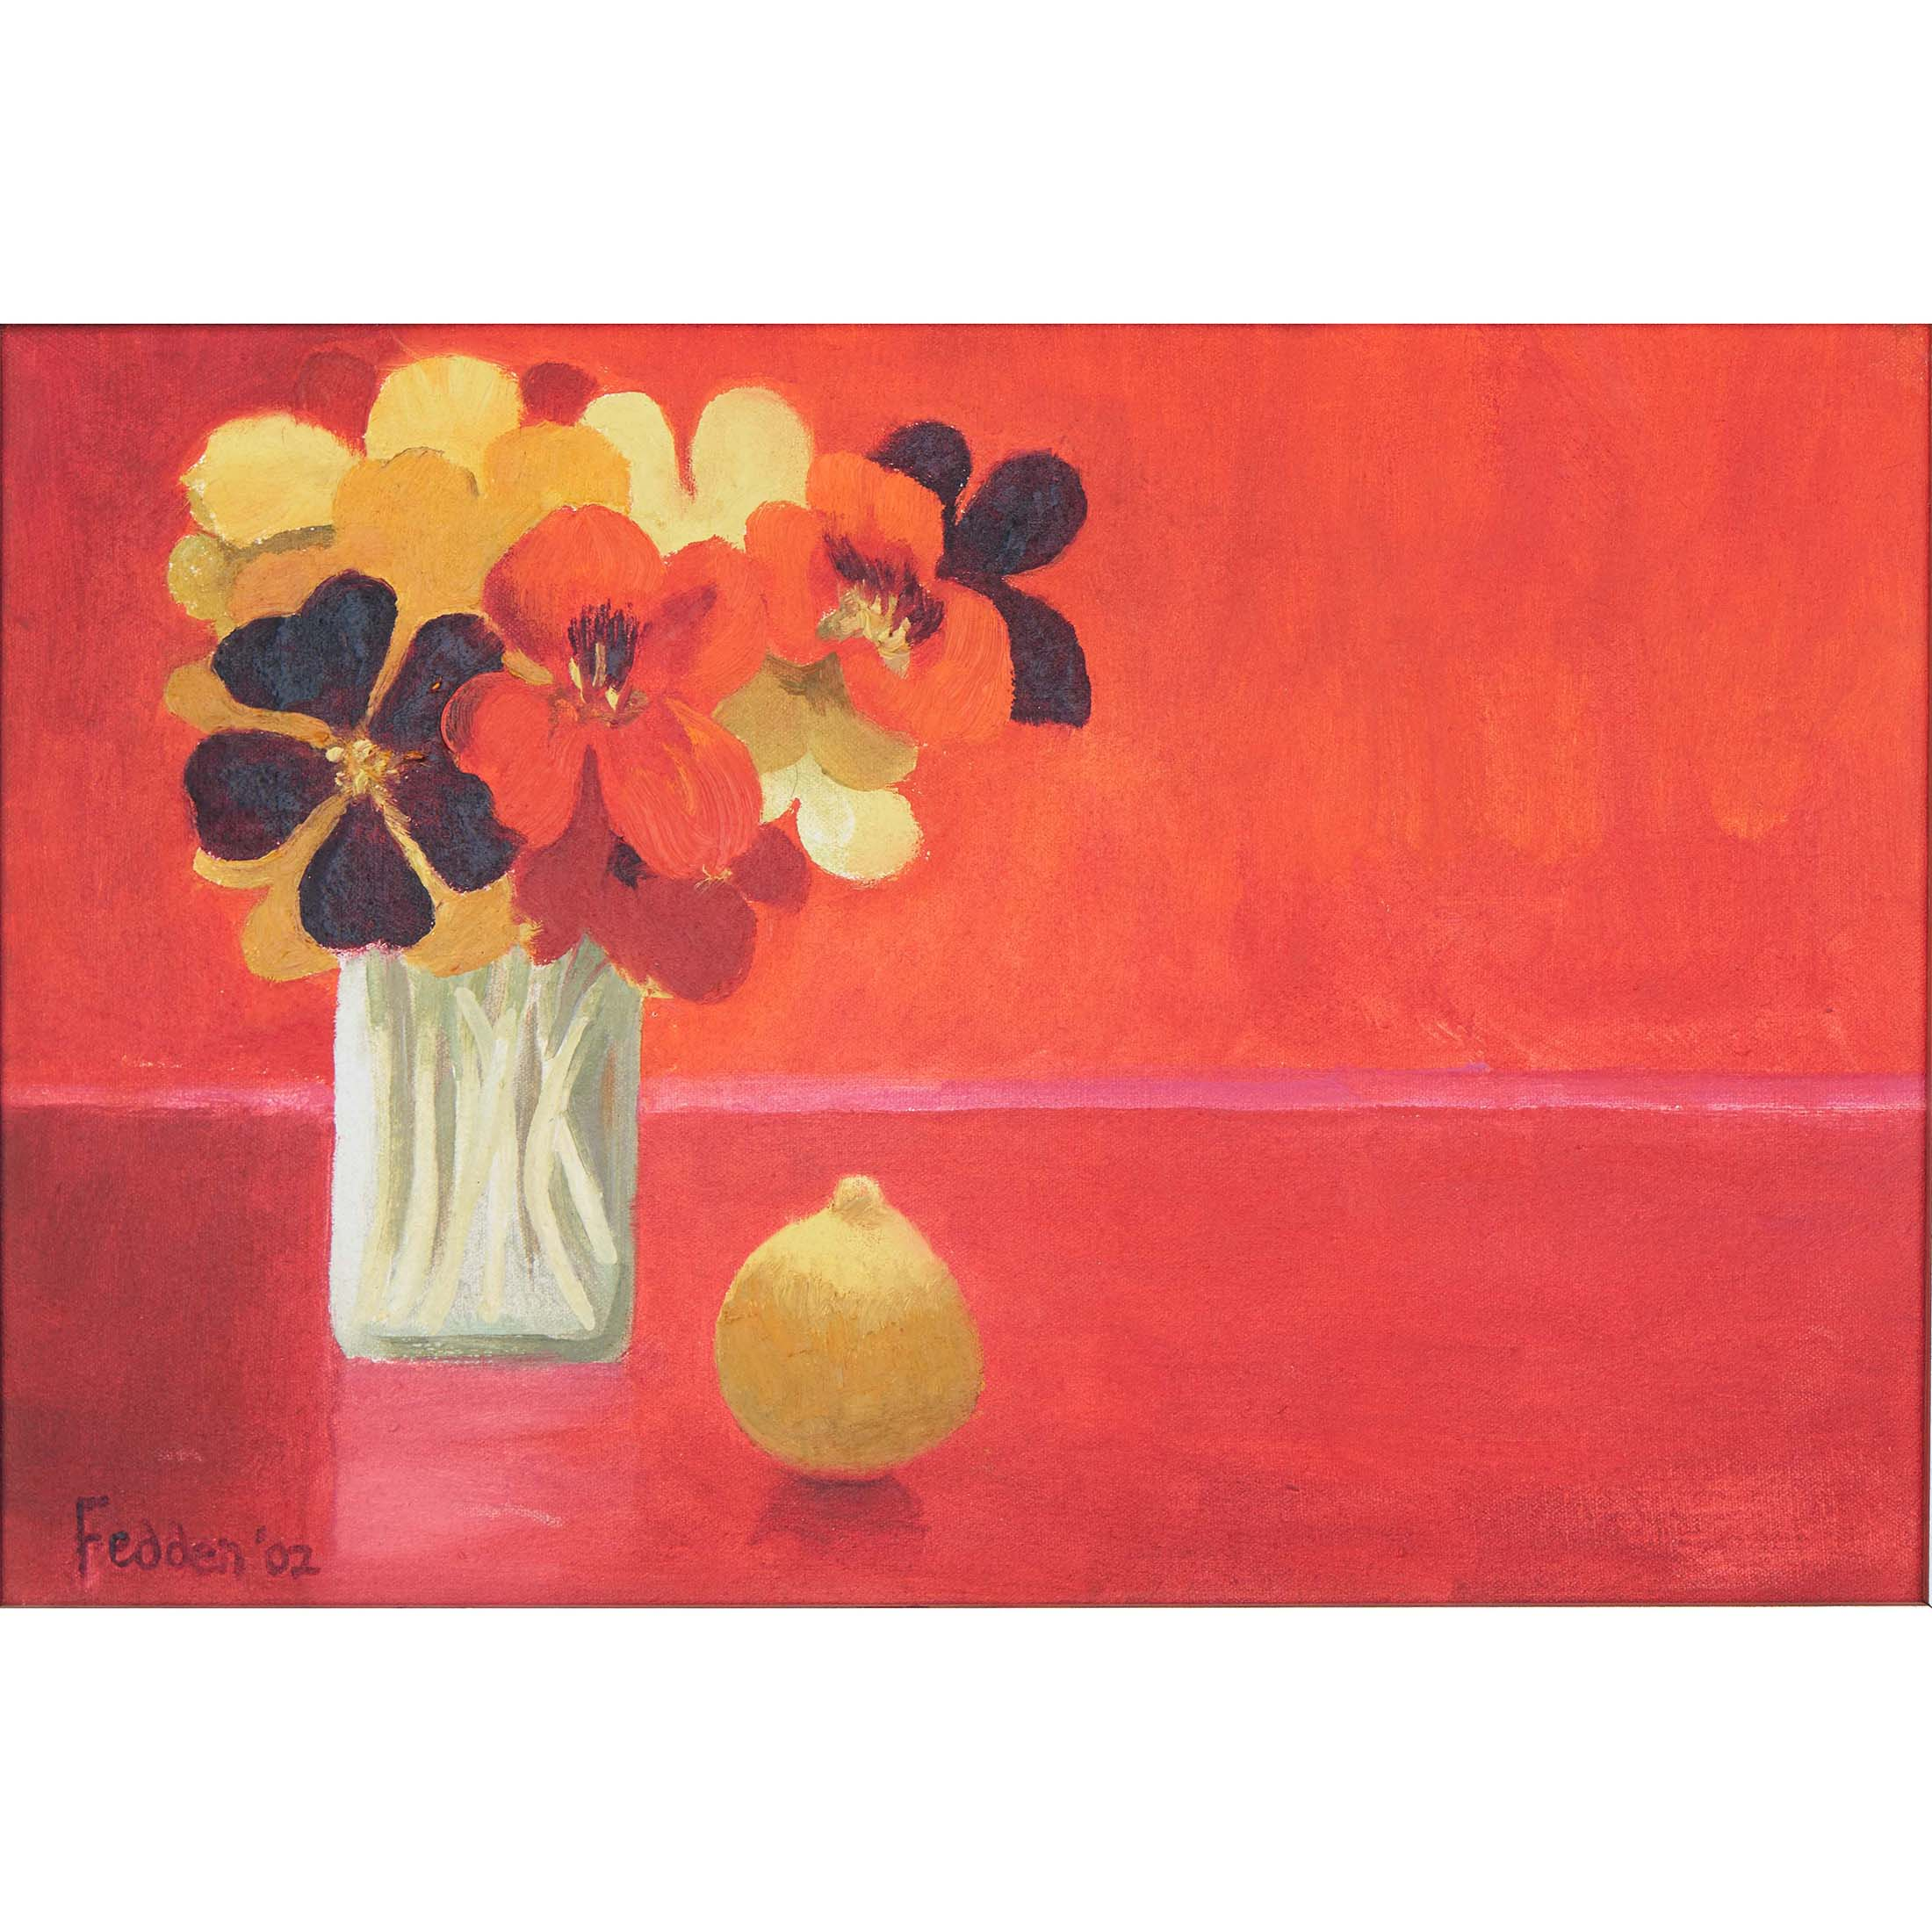 MARY FEDDEN. NASTURTIUMS. 2002. SOLD